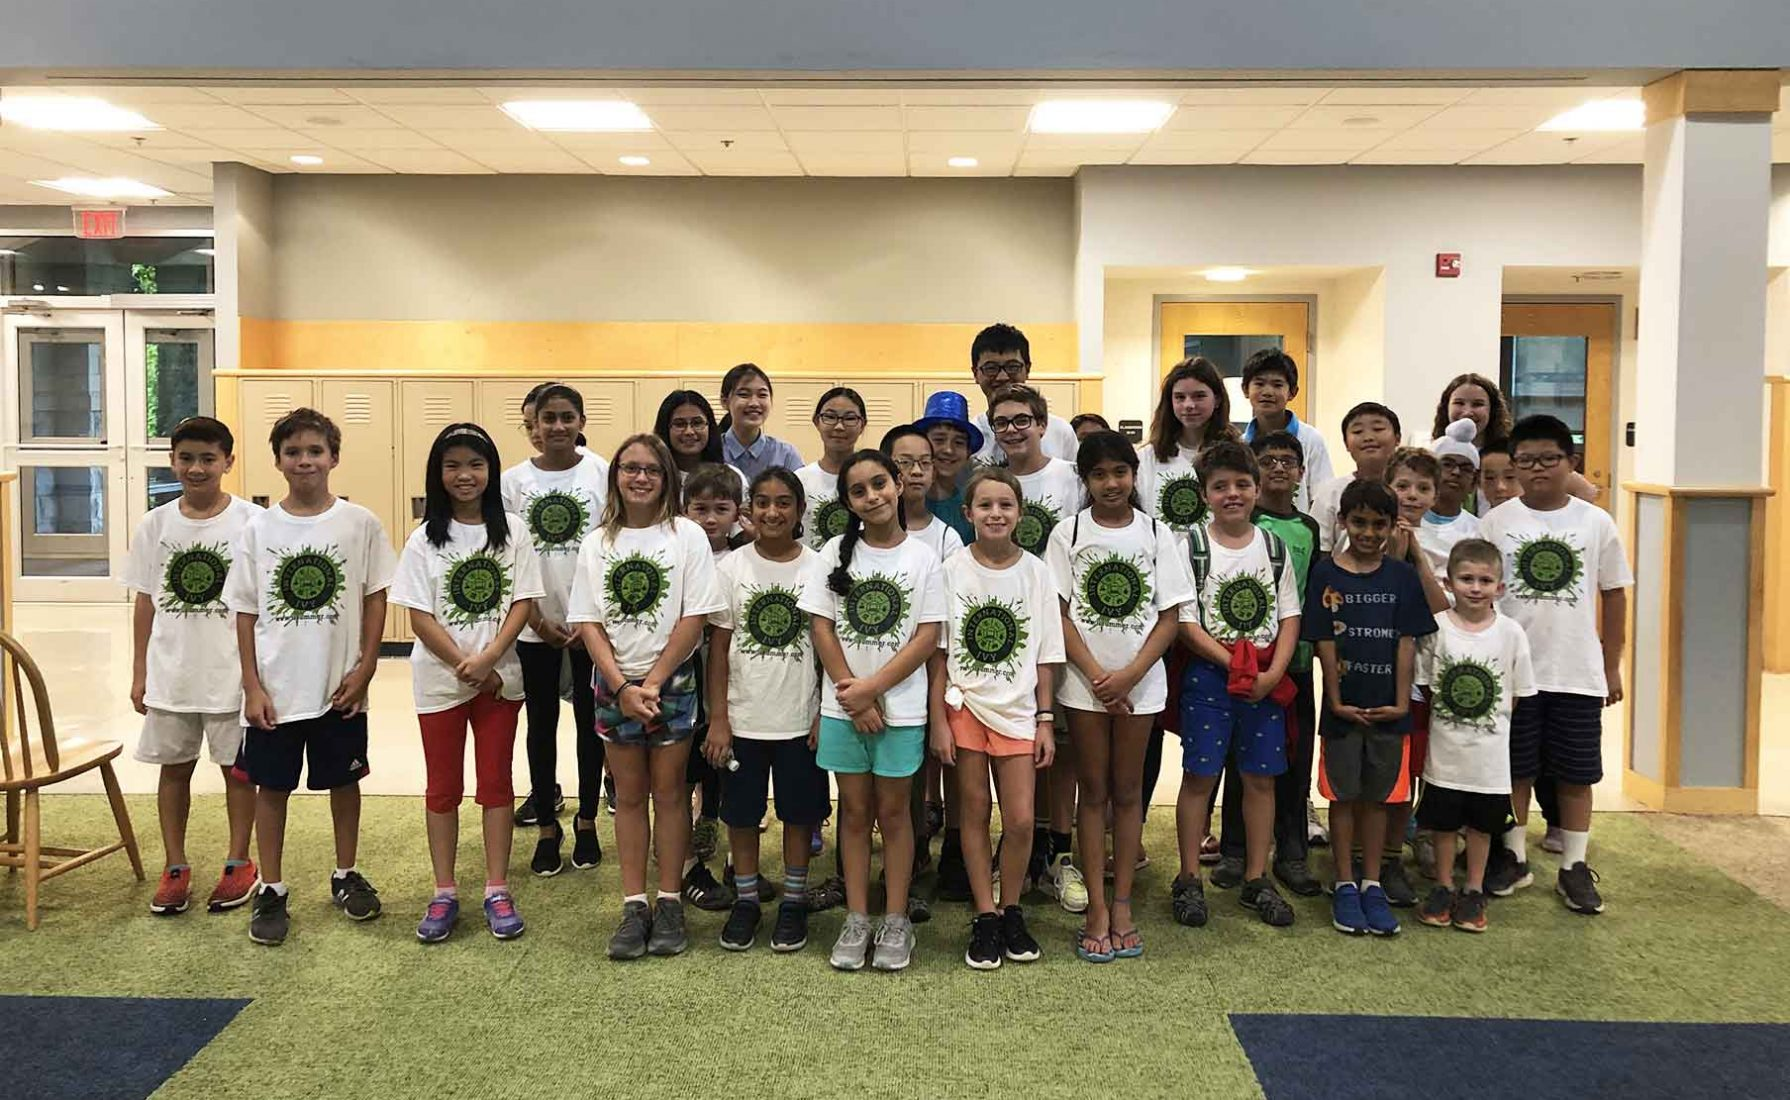 A group photo of campers for the International Ivy program.